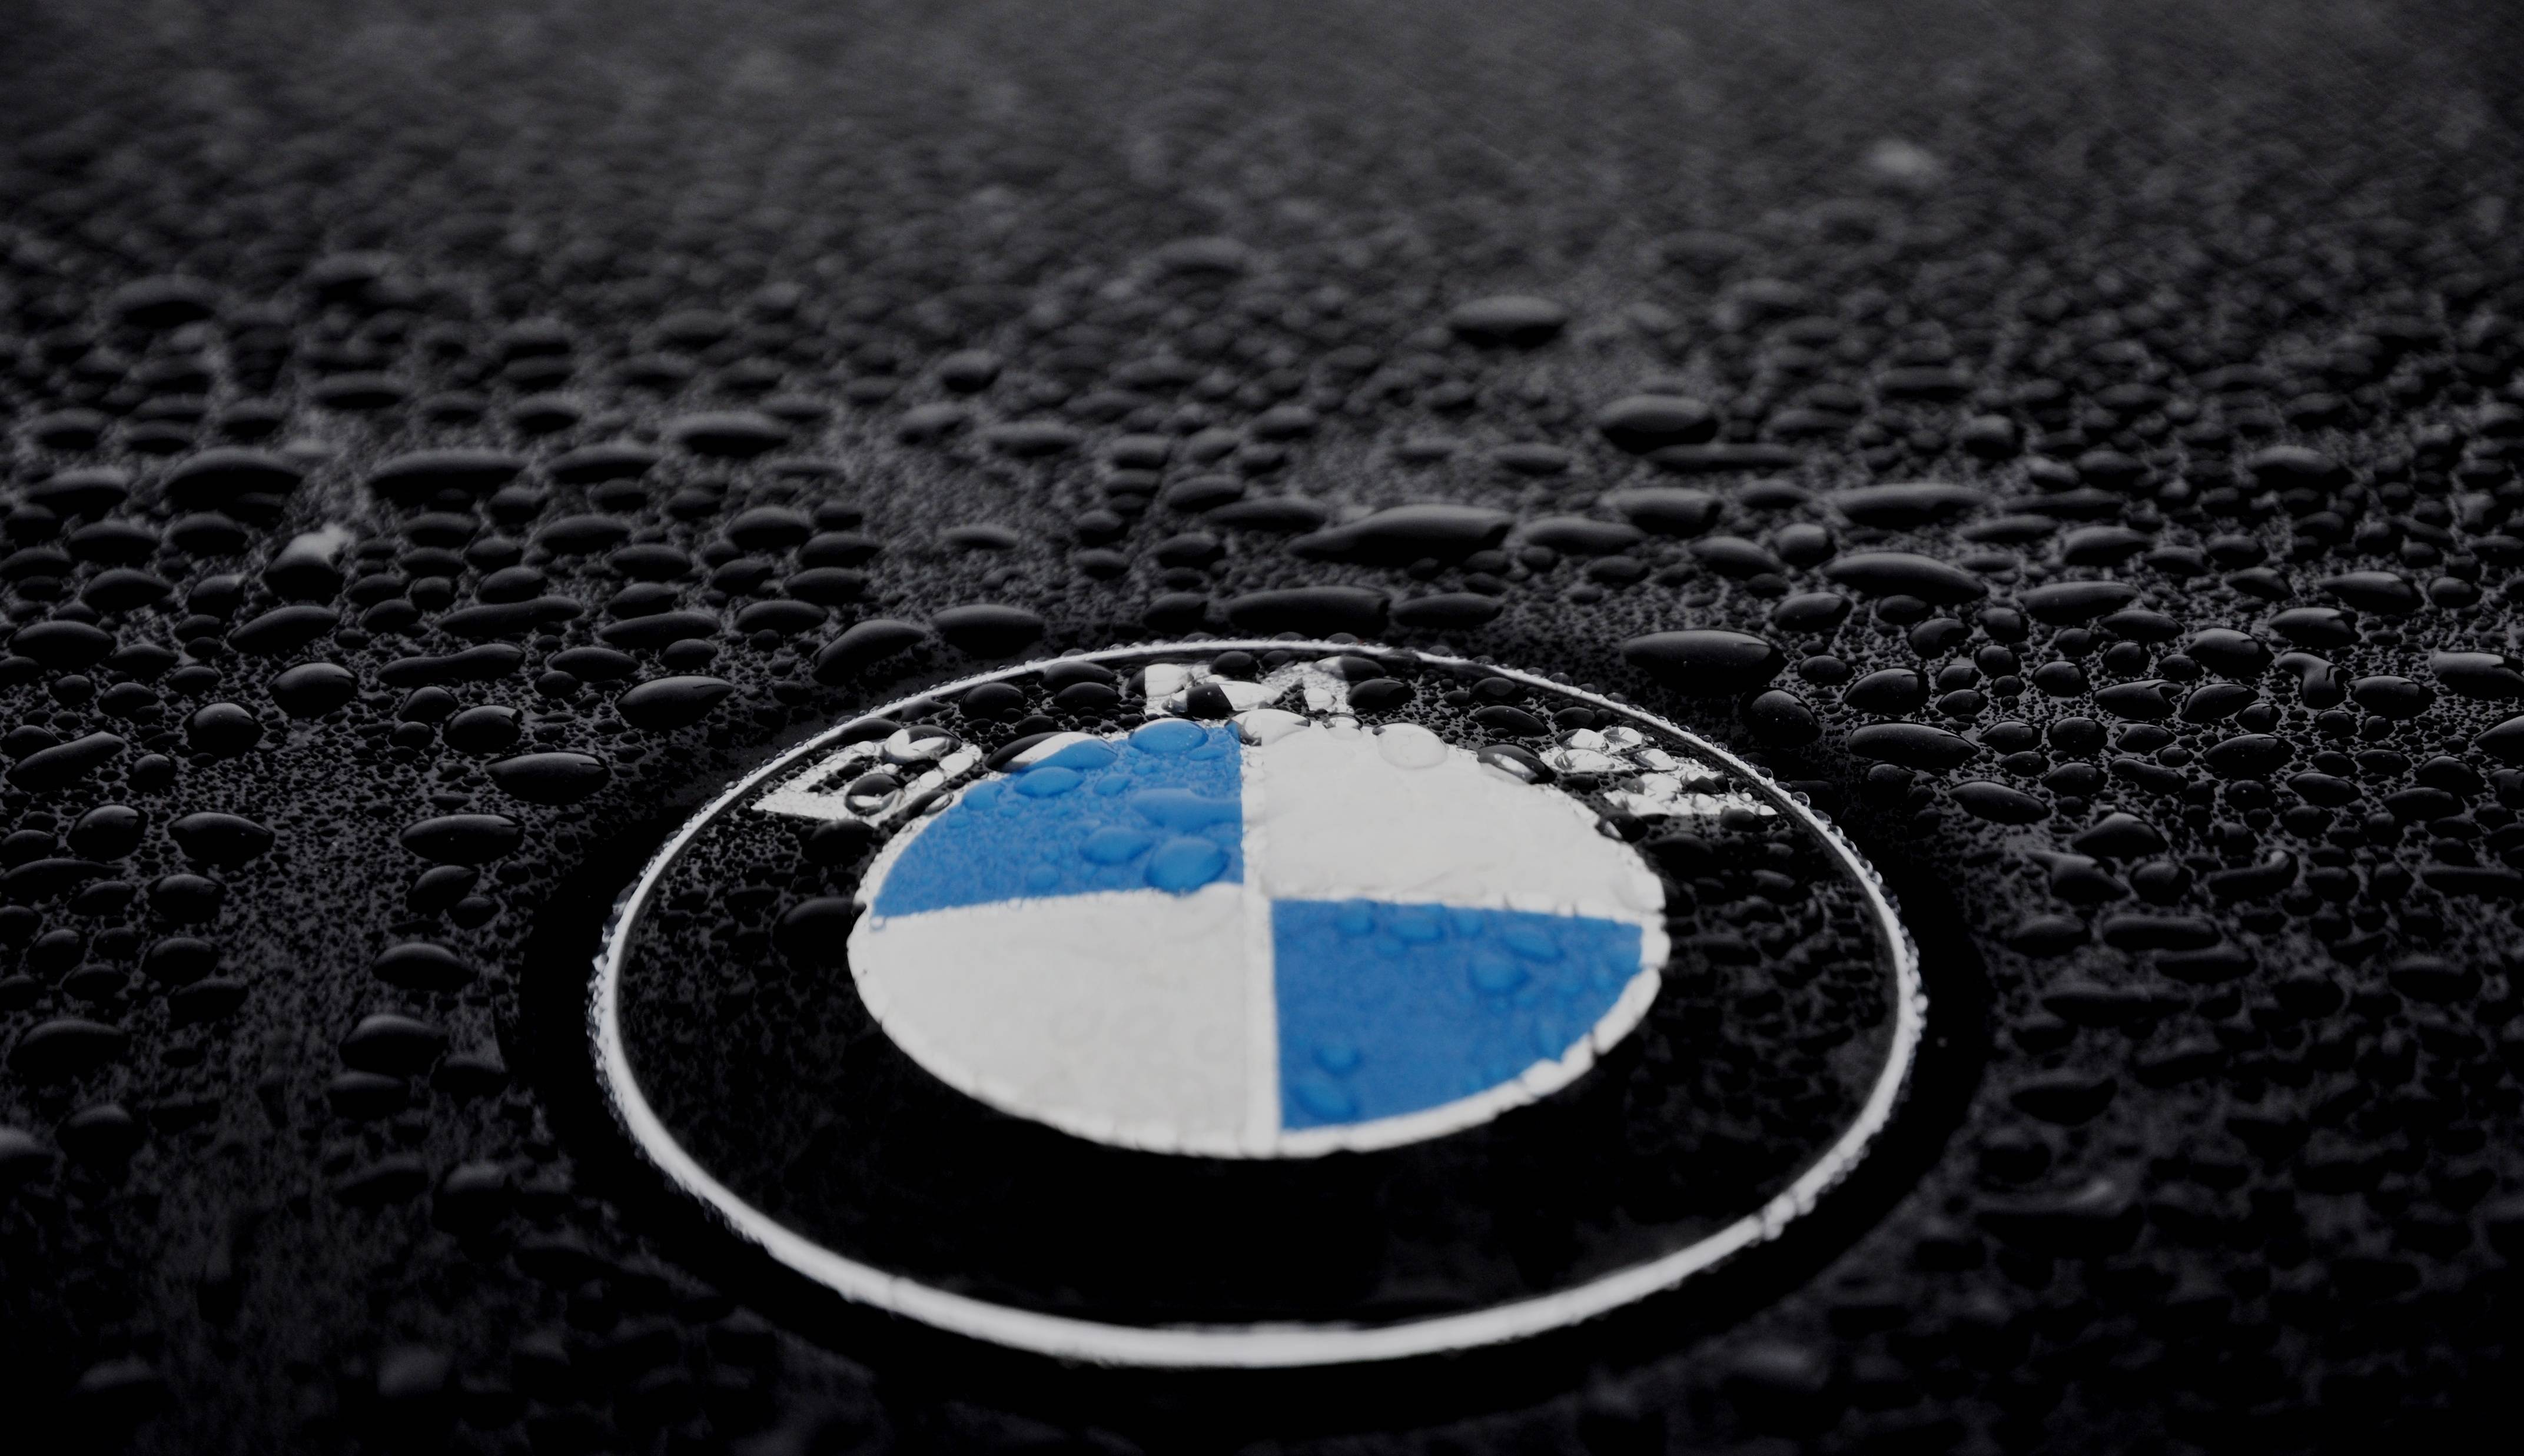 bmw logo cars best cool wallpapers | Desktop Backgrounds for Free ...